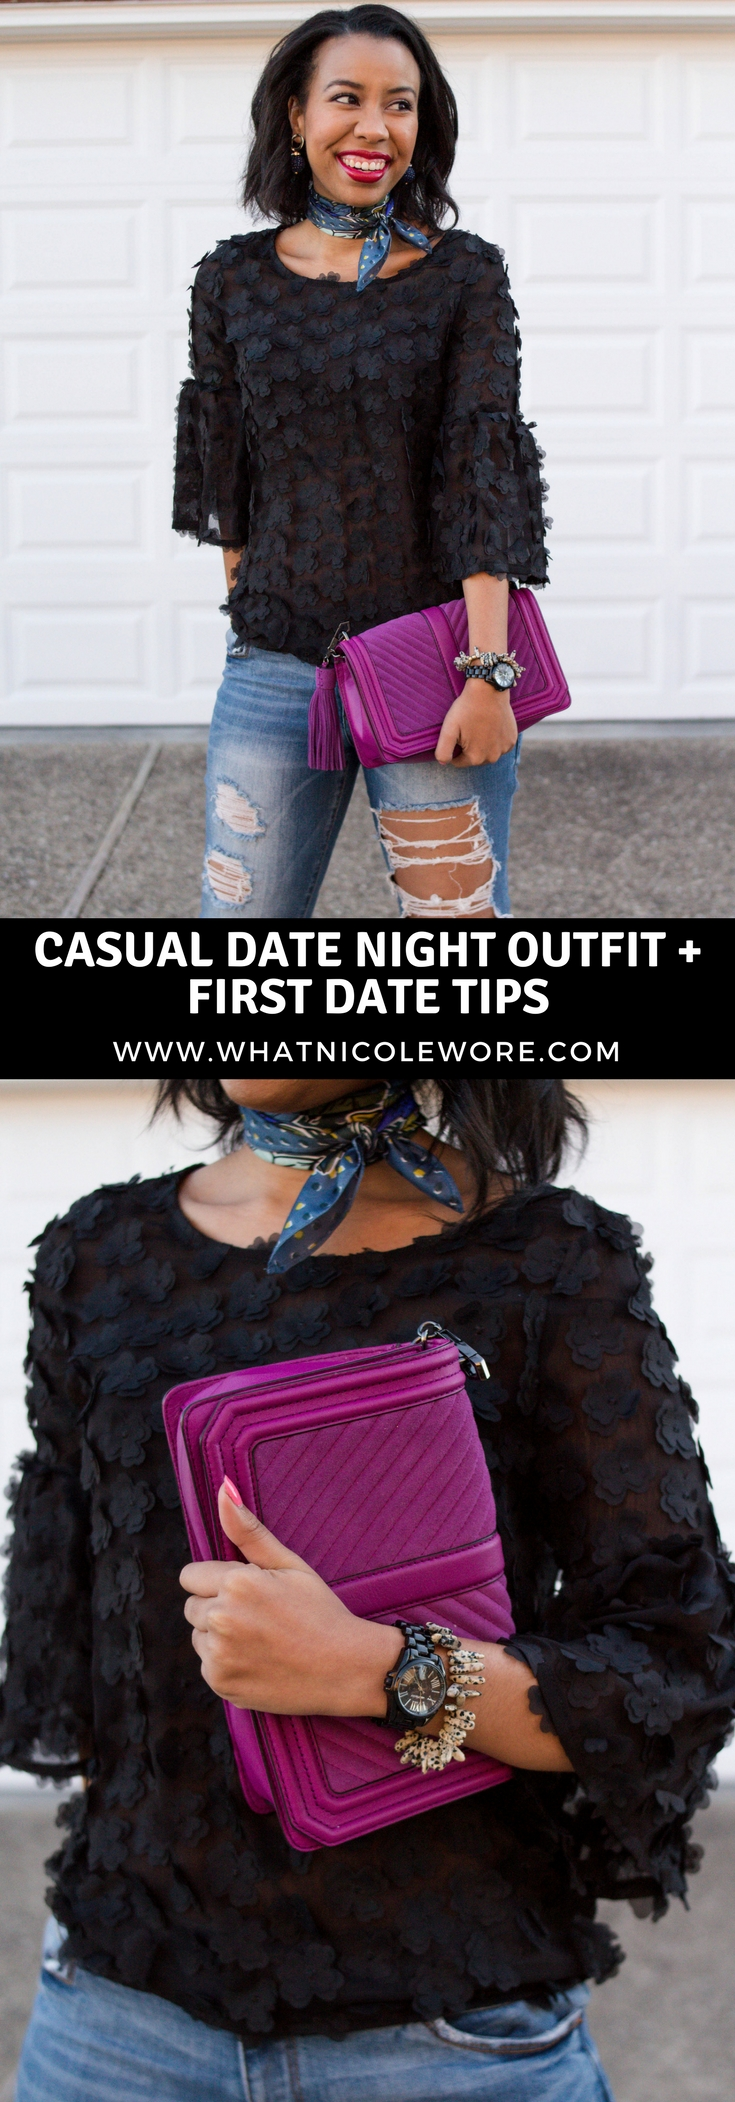 First Date Behavior & Warning Signs + Go To Date Night Look